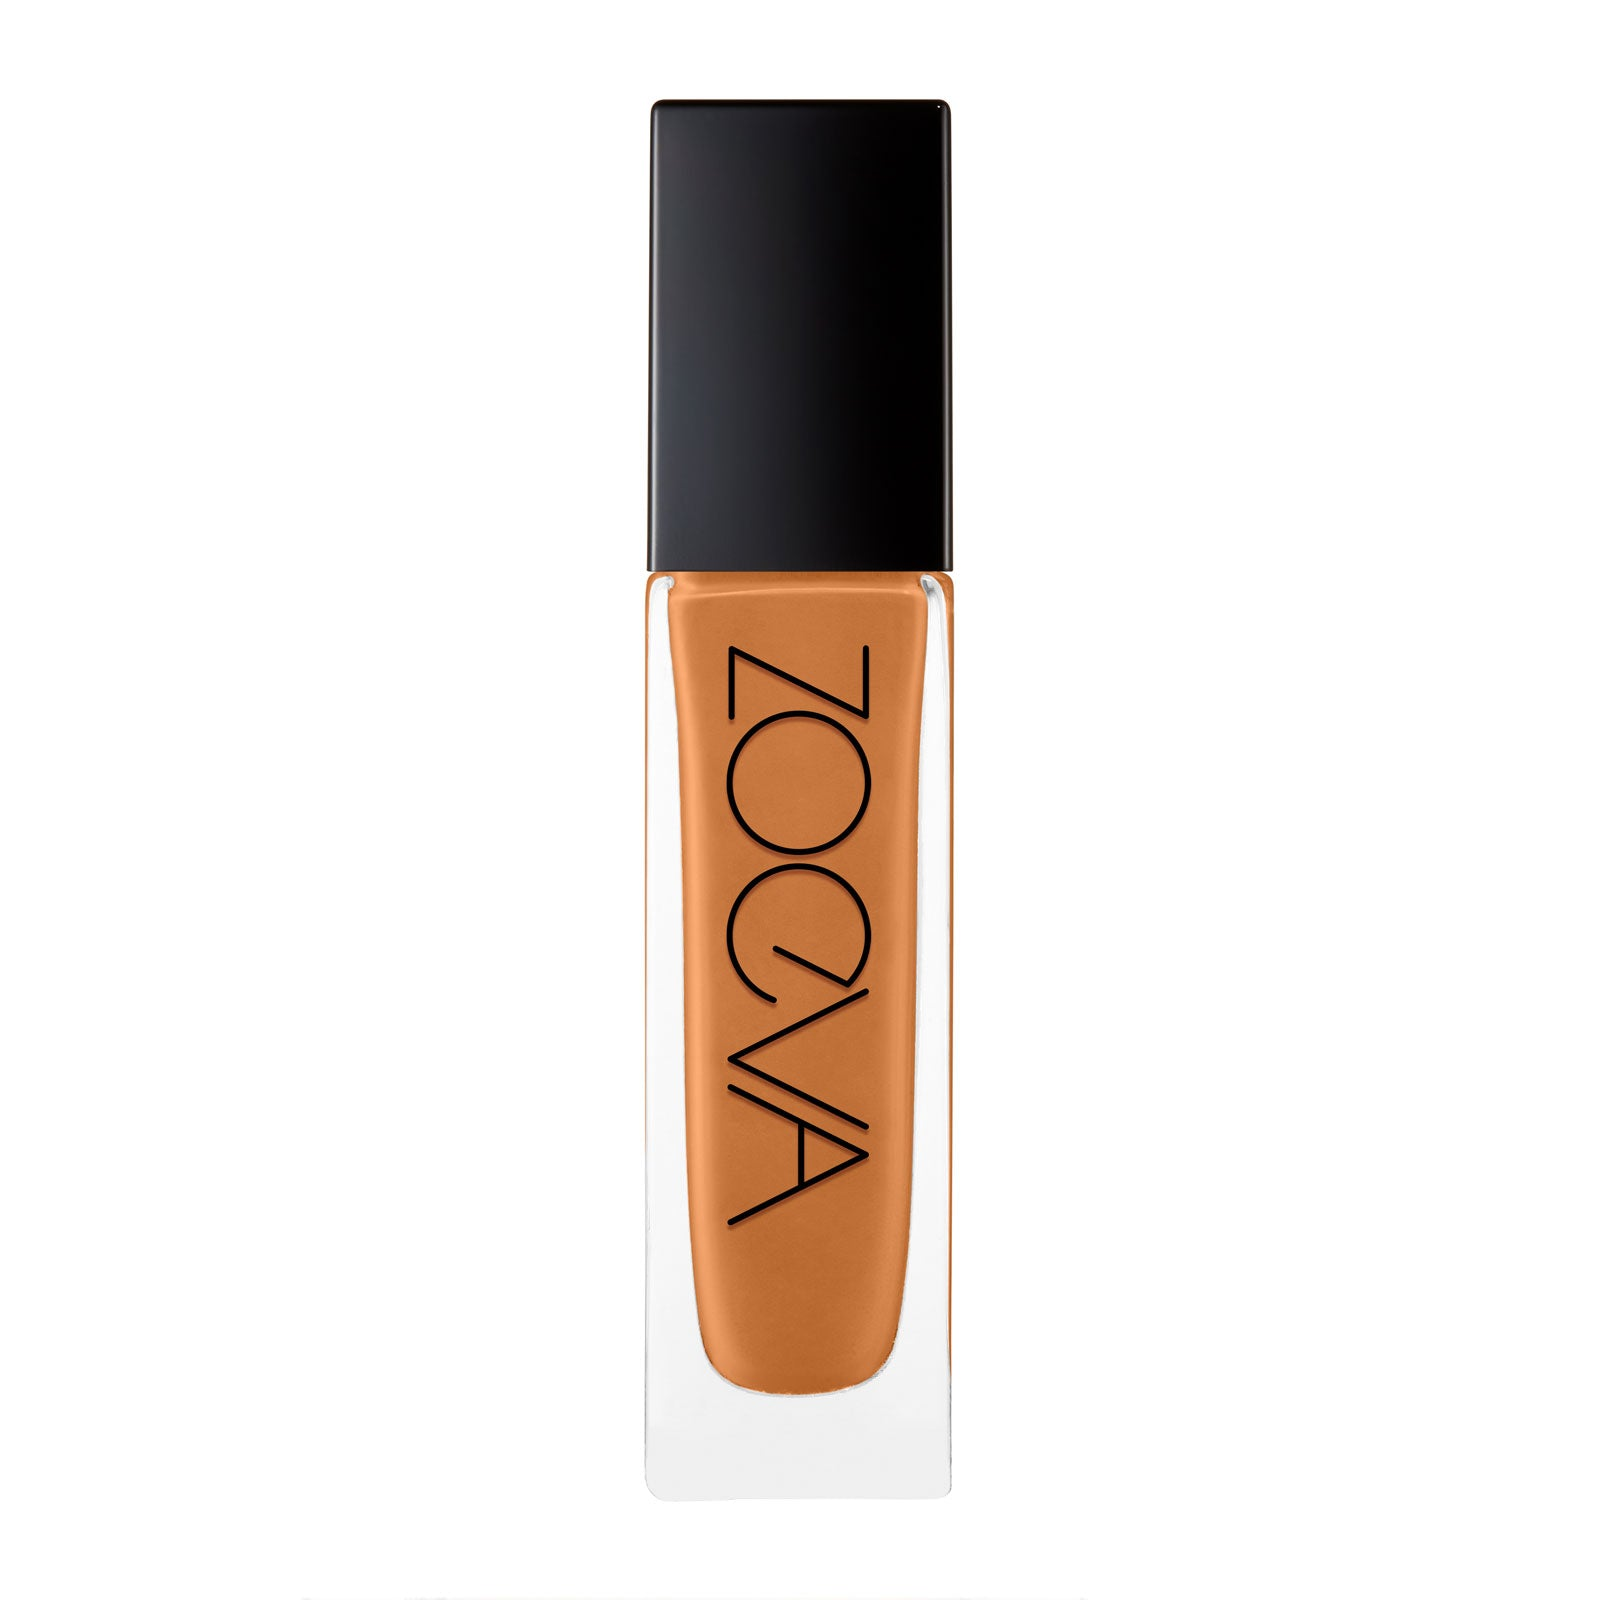 ZOEVA Authentik Skin Foundation 30ml